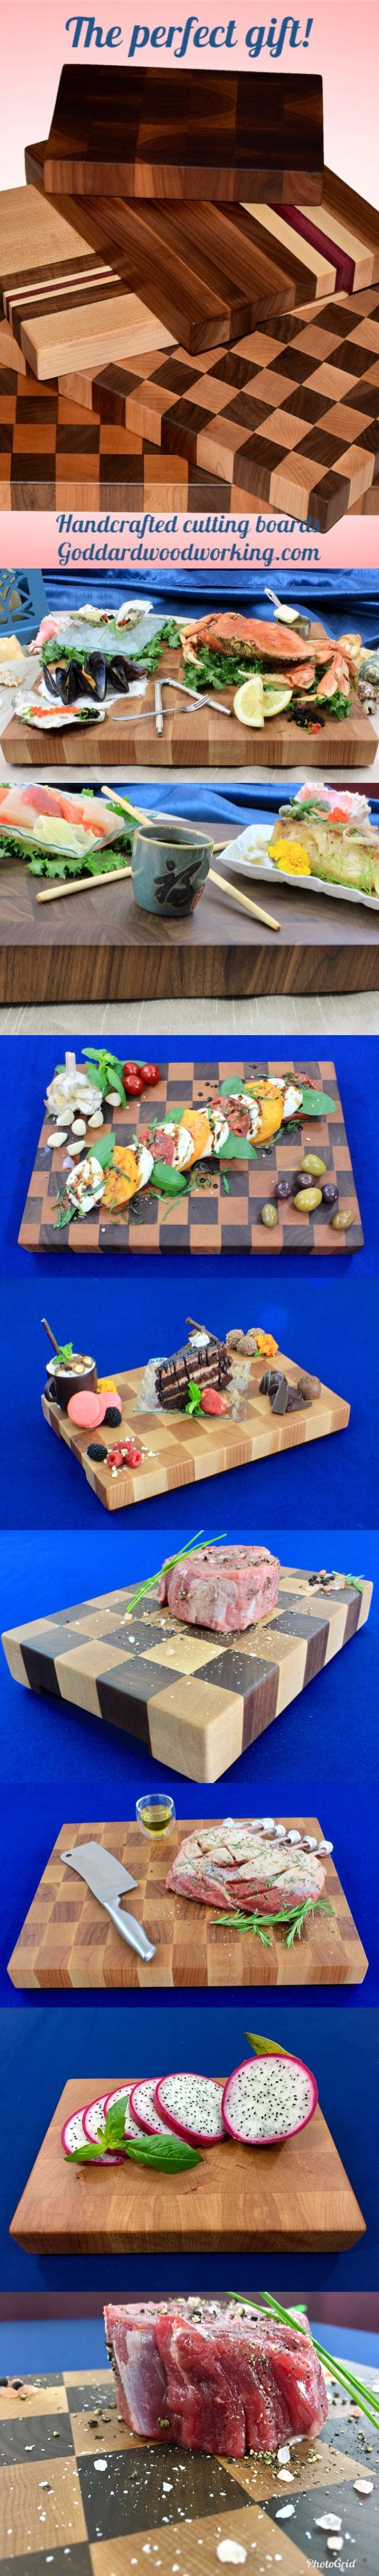 Make any party appetizers and dessert stand out when displayed on a handcrafted end grain cutting board! These boards not only serve a purpose, but also provide a animated eye-catching piece of décor for your home. #wine #winetime #handcrafted #cuttingboard #cooking #handmade #woodworking #foodie #partydecor #gifts #giftguide #giftsforher #amazing #giftideas #cook #chef #house #kitchendesign #wedding #weddinggift #dinnerparty #partytime #kitchenideas #weddinginspiration #homedecor #kitchens